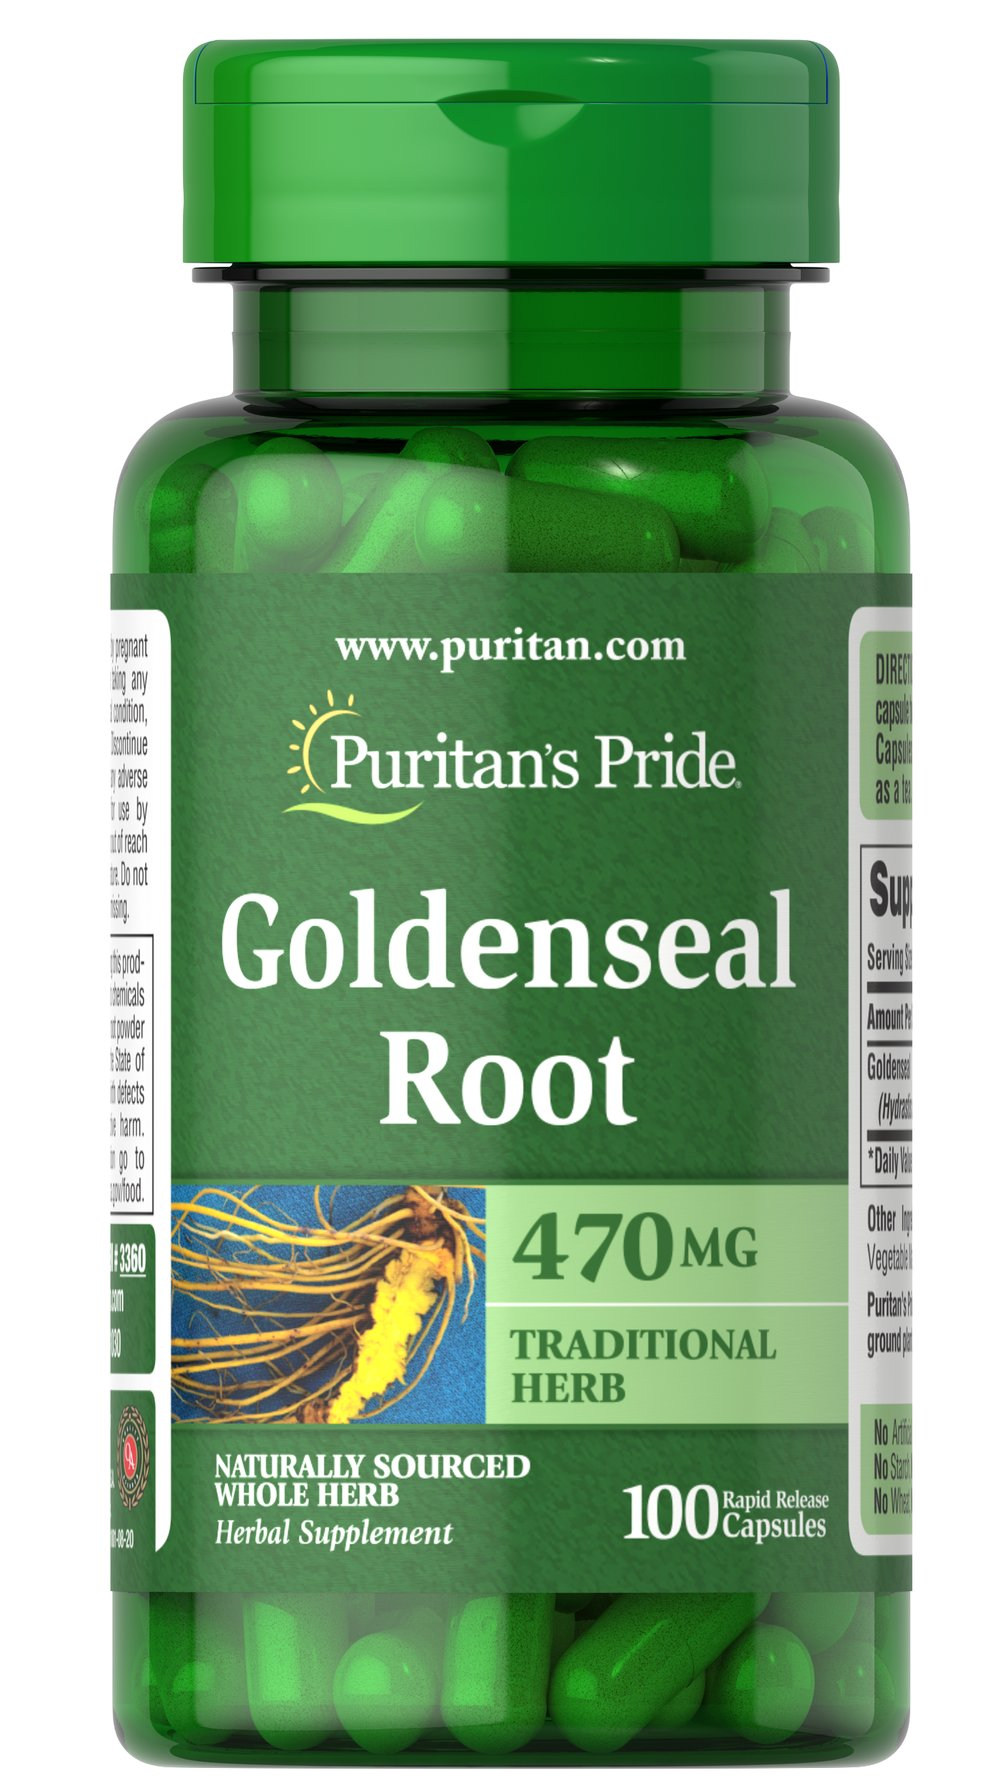 Goldenseal Root 470 mg <p>Helps maintain a healthy immune system**</p><p>Traditionally used for digestive tract health**</p><p>Natural whole herb++</p><p>Goldenseal contains important alkaloids, including hydrastine and berberine, which contribute to a healthy immune system.**</p><p>++Puritan's Pride's Natural Whole Herb products utilize ground plant parts to provide the natural components in the amounts found in nature.</p>  10